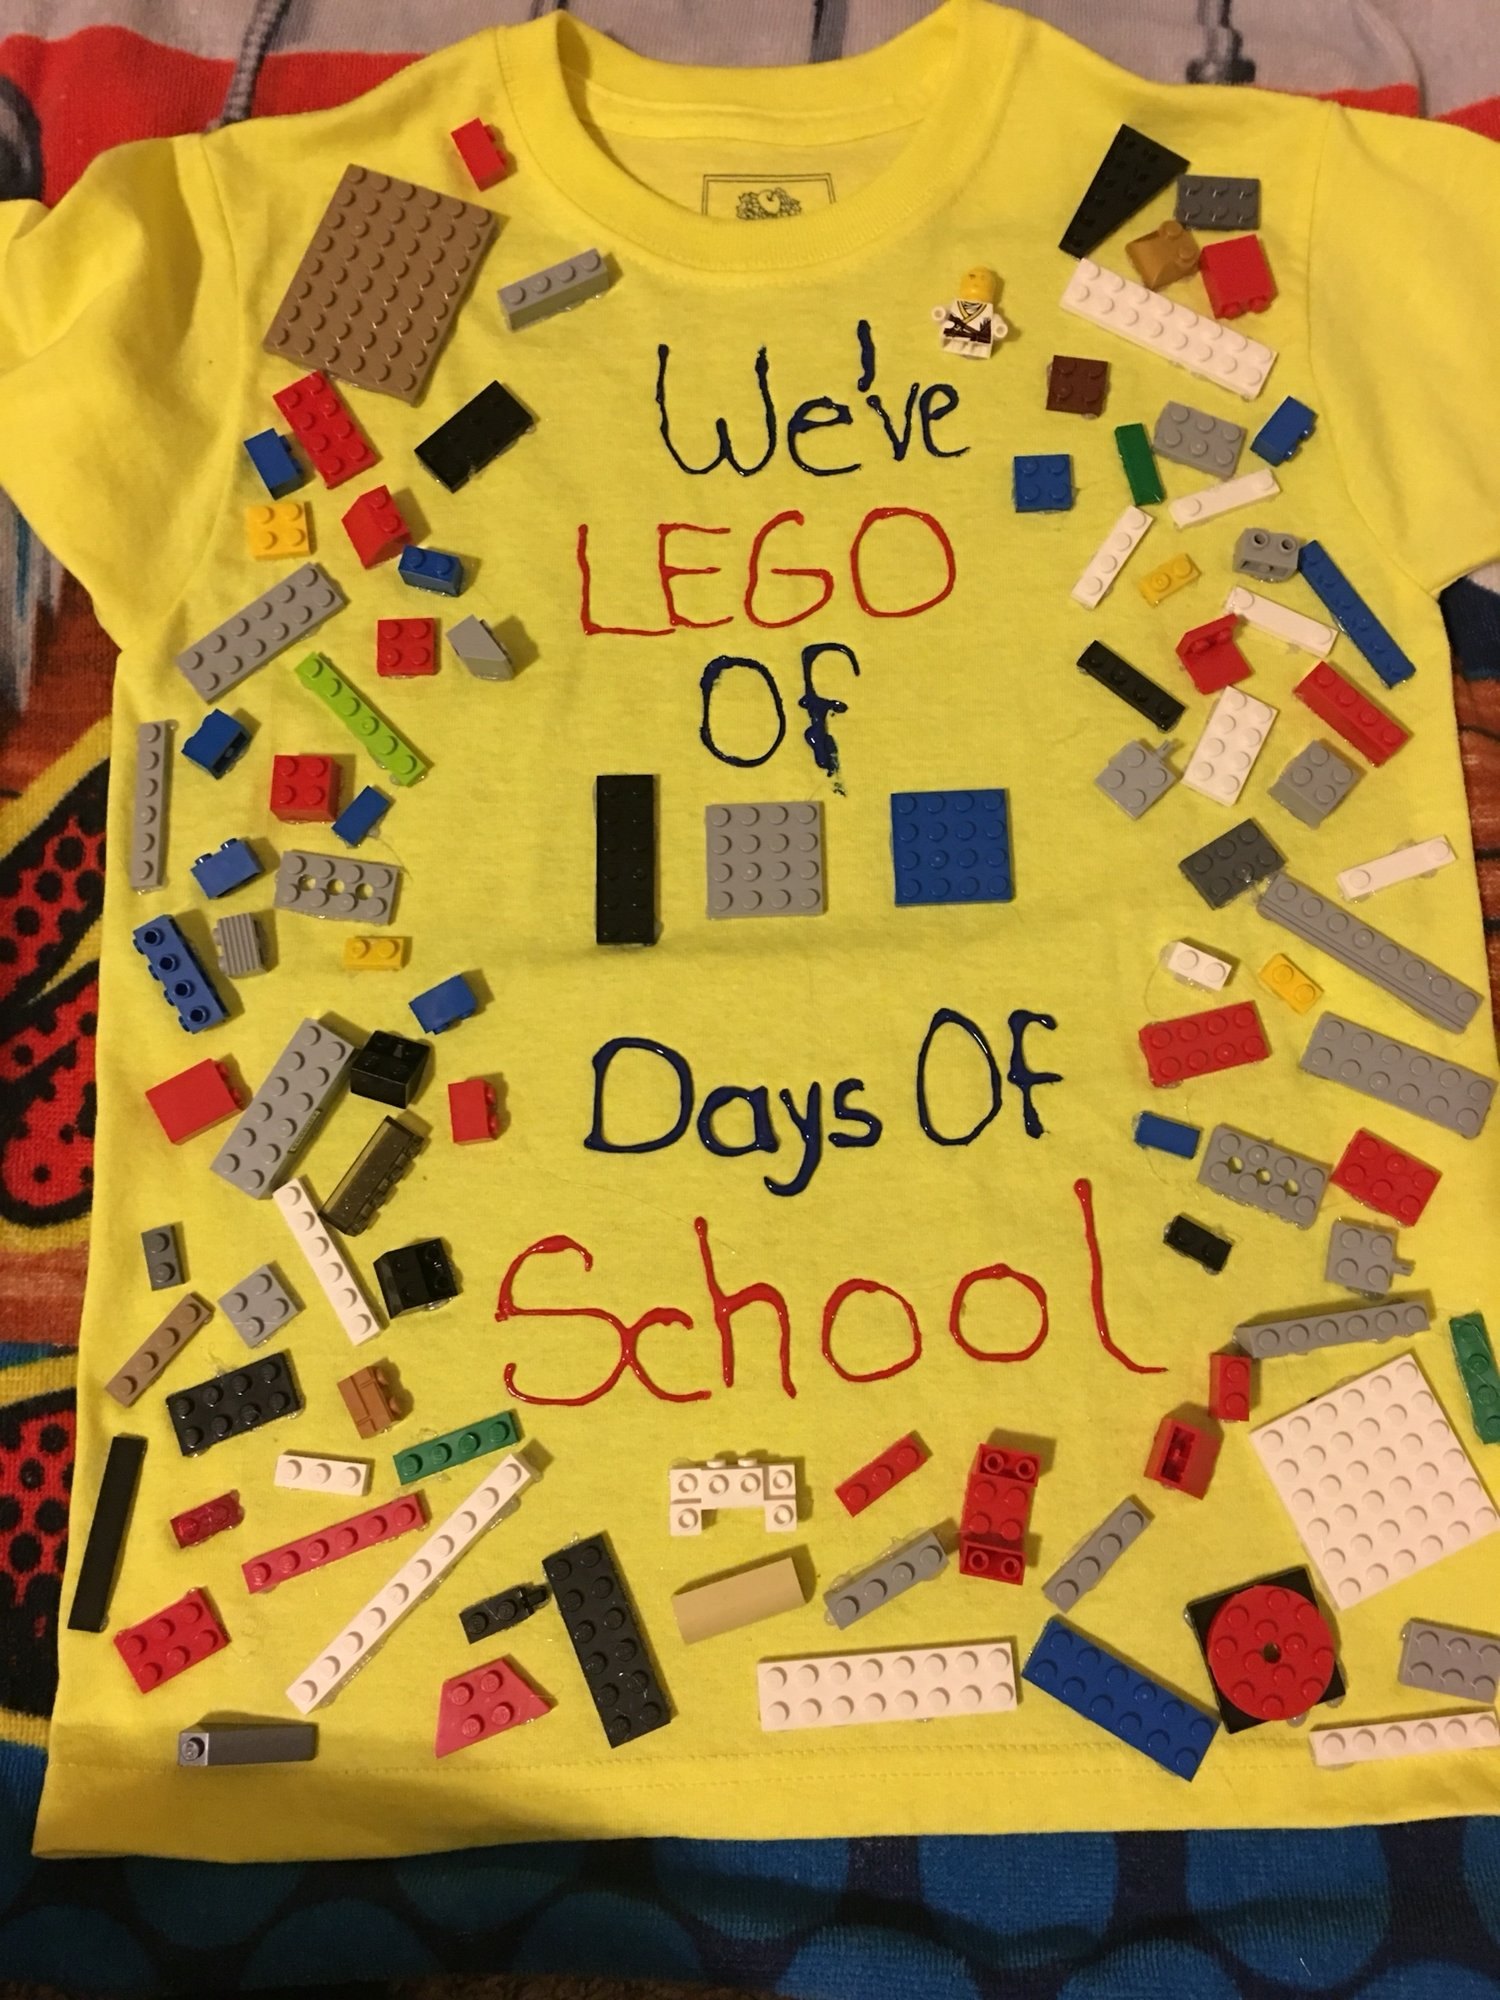 10 Fantastic 100 Days Of School Ideas weve lego 100 days of school 100th day t shirt my stuff 3 2020